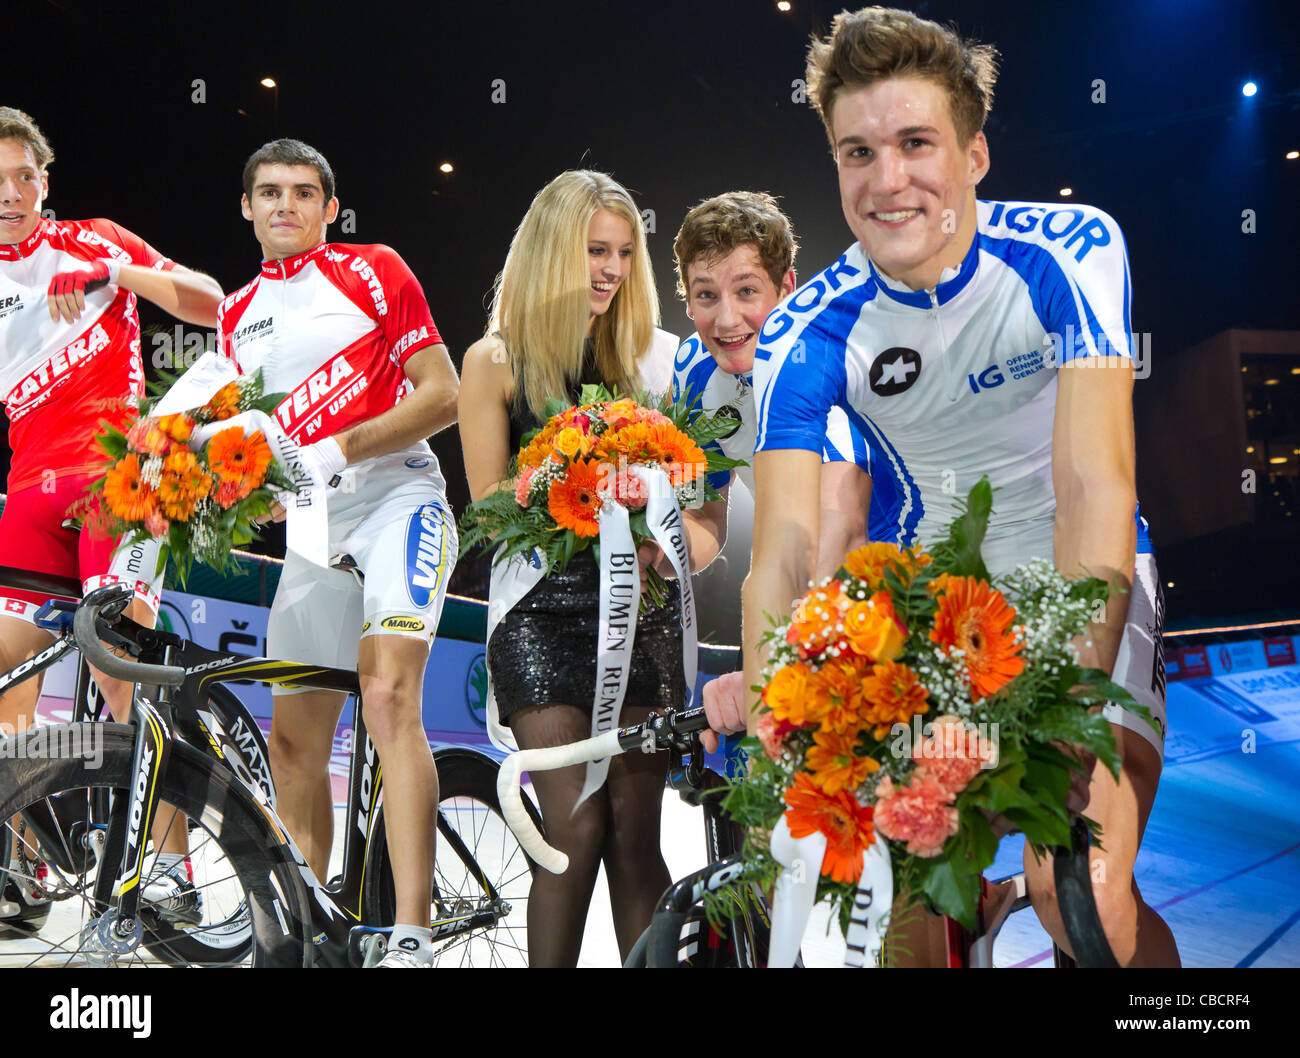 Team Keller Küng of ProTer Track Team celebrates amateur victory of first Americaine race ar Sixday-Nights - Stock Image